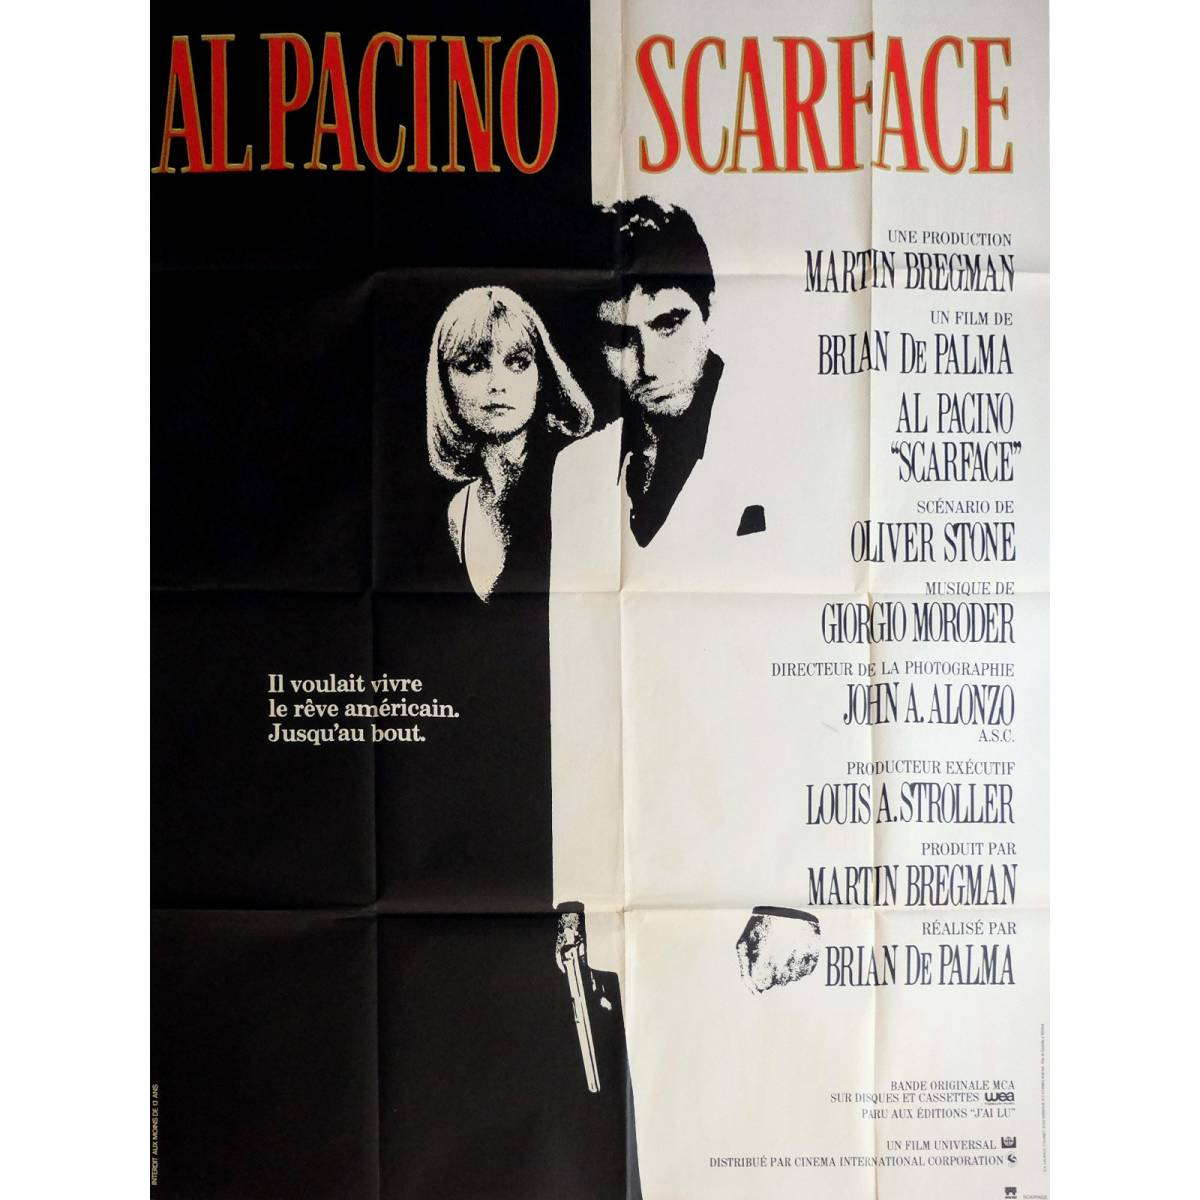 scarface-french-movie-poster-47x63-83-al-pacino-brian-de-palma.jpg